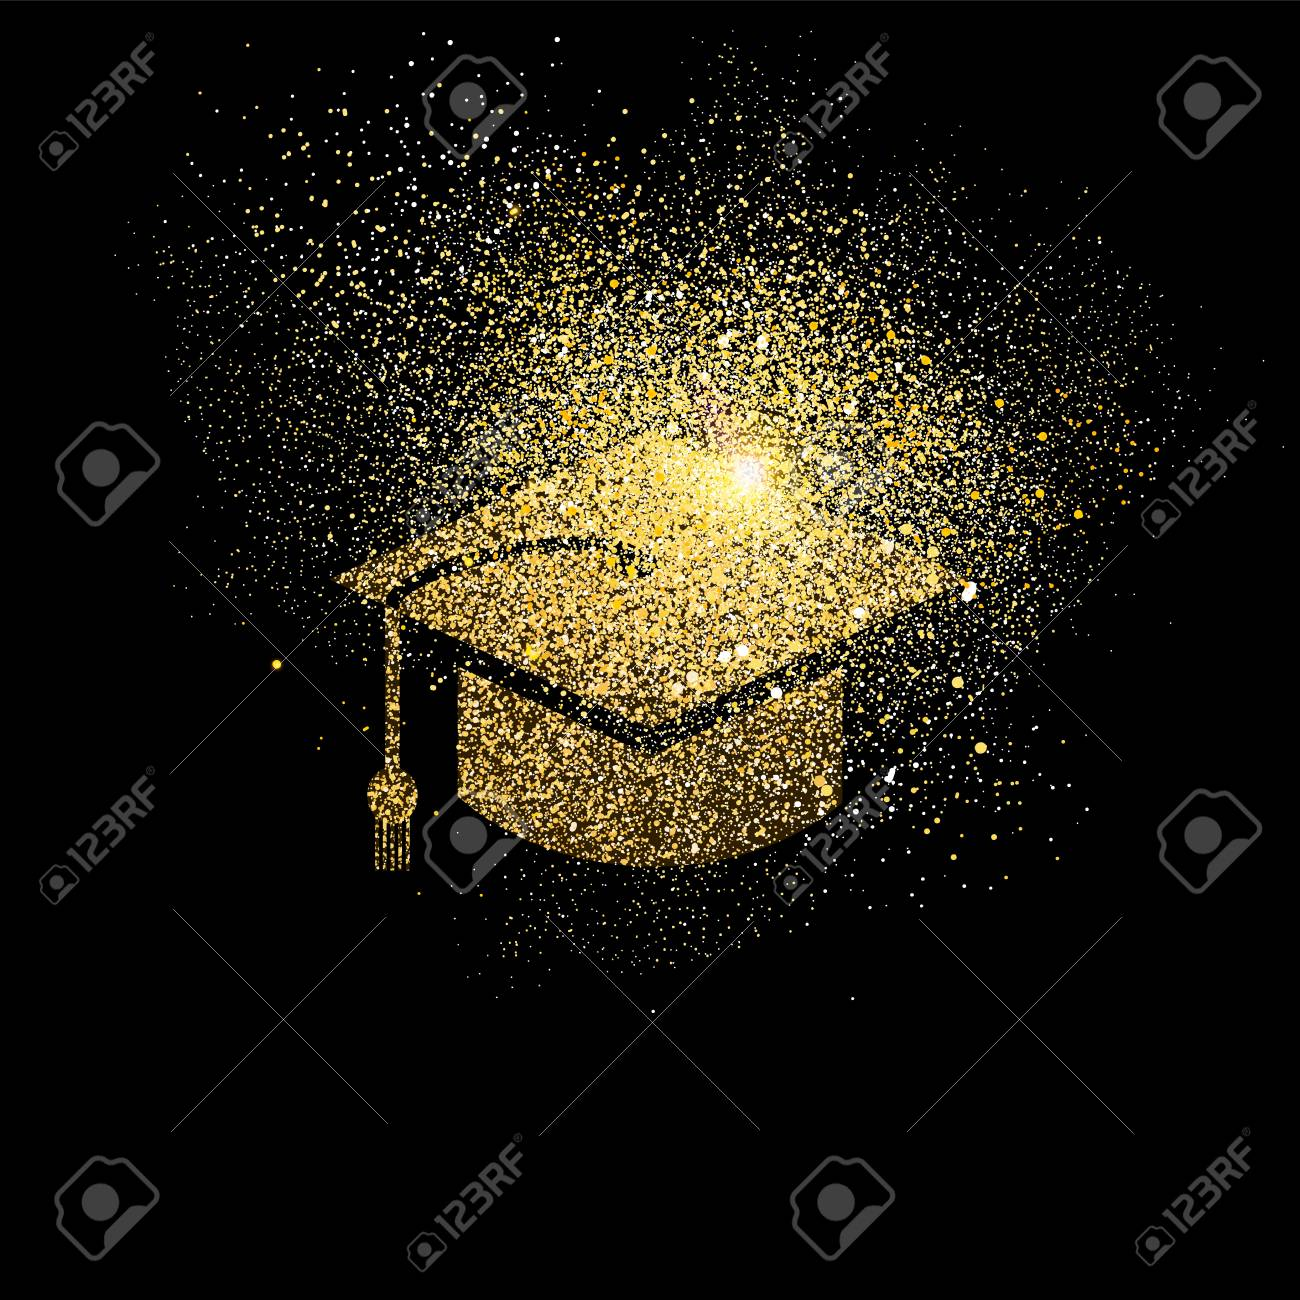 Graduation Cap Symbol Concept Illustration Gold College Student